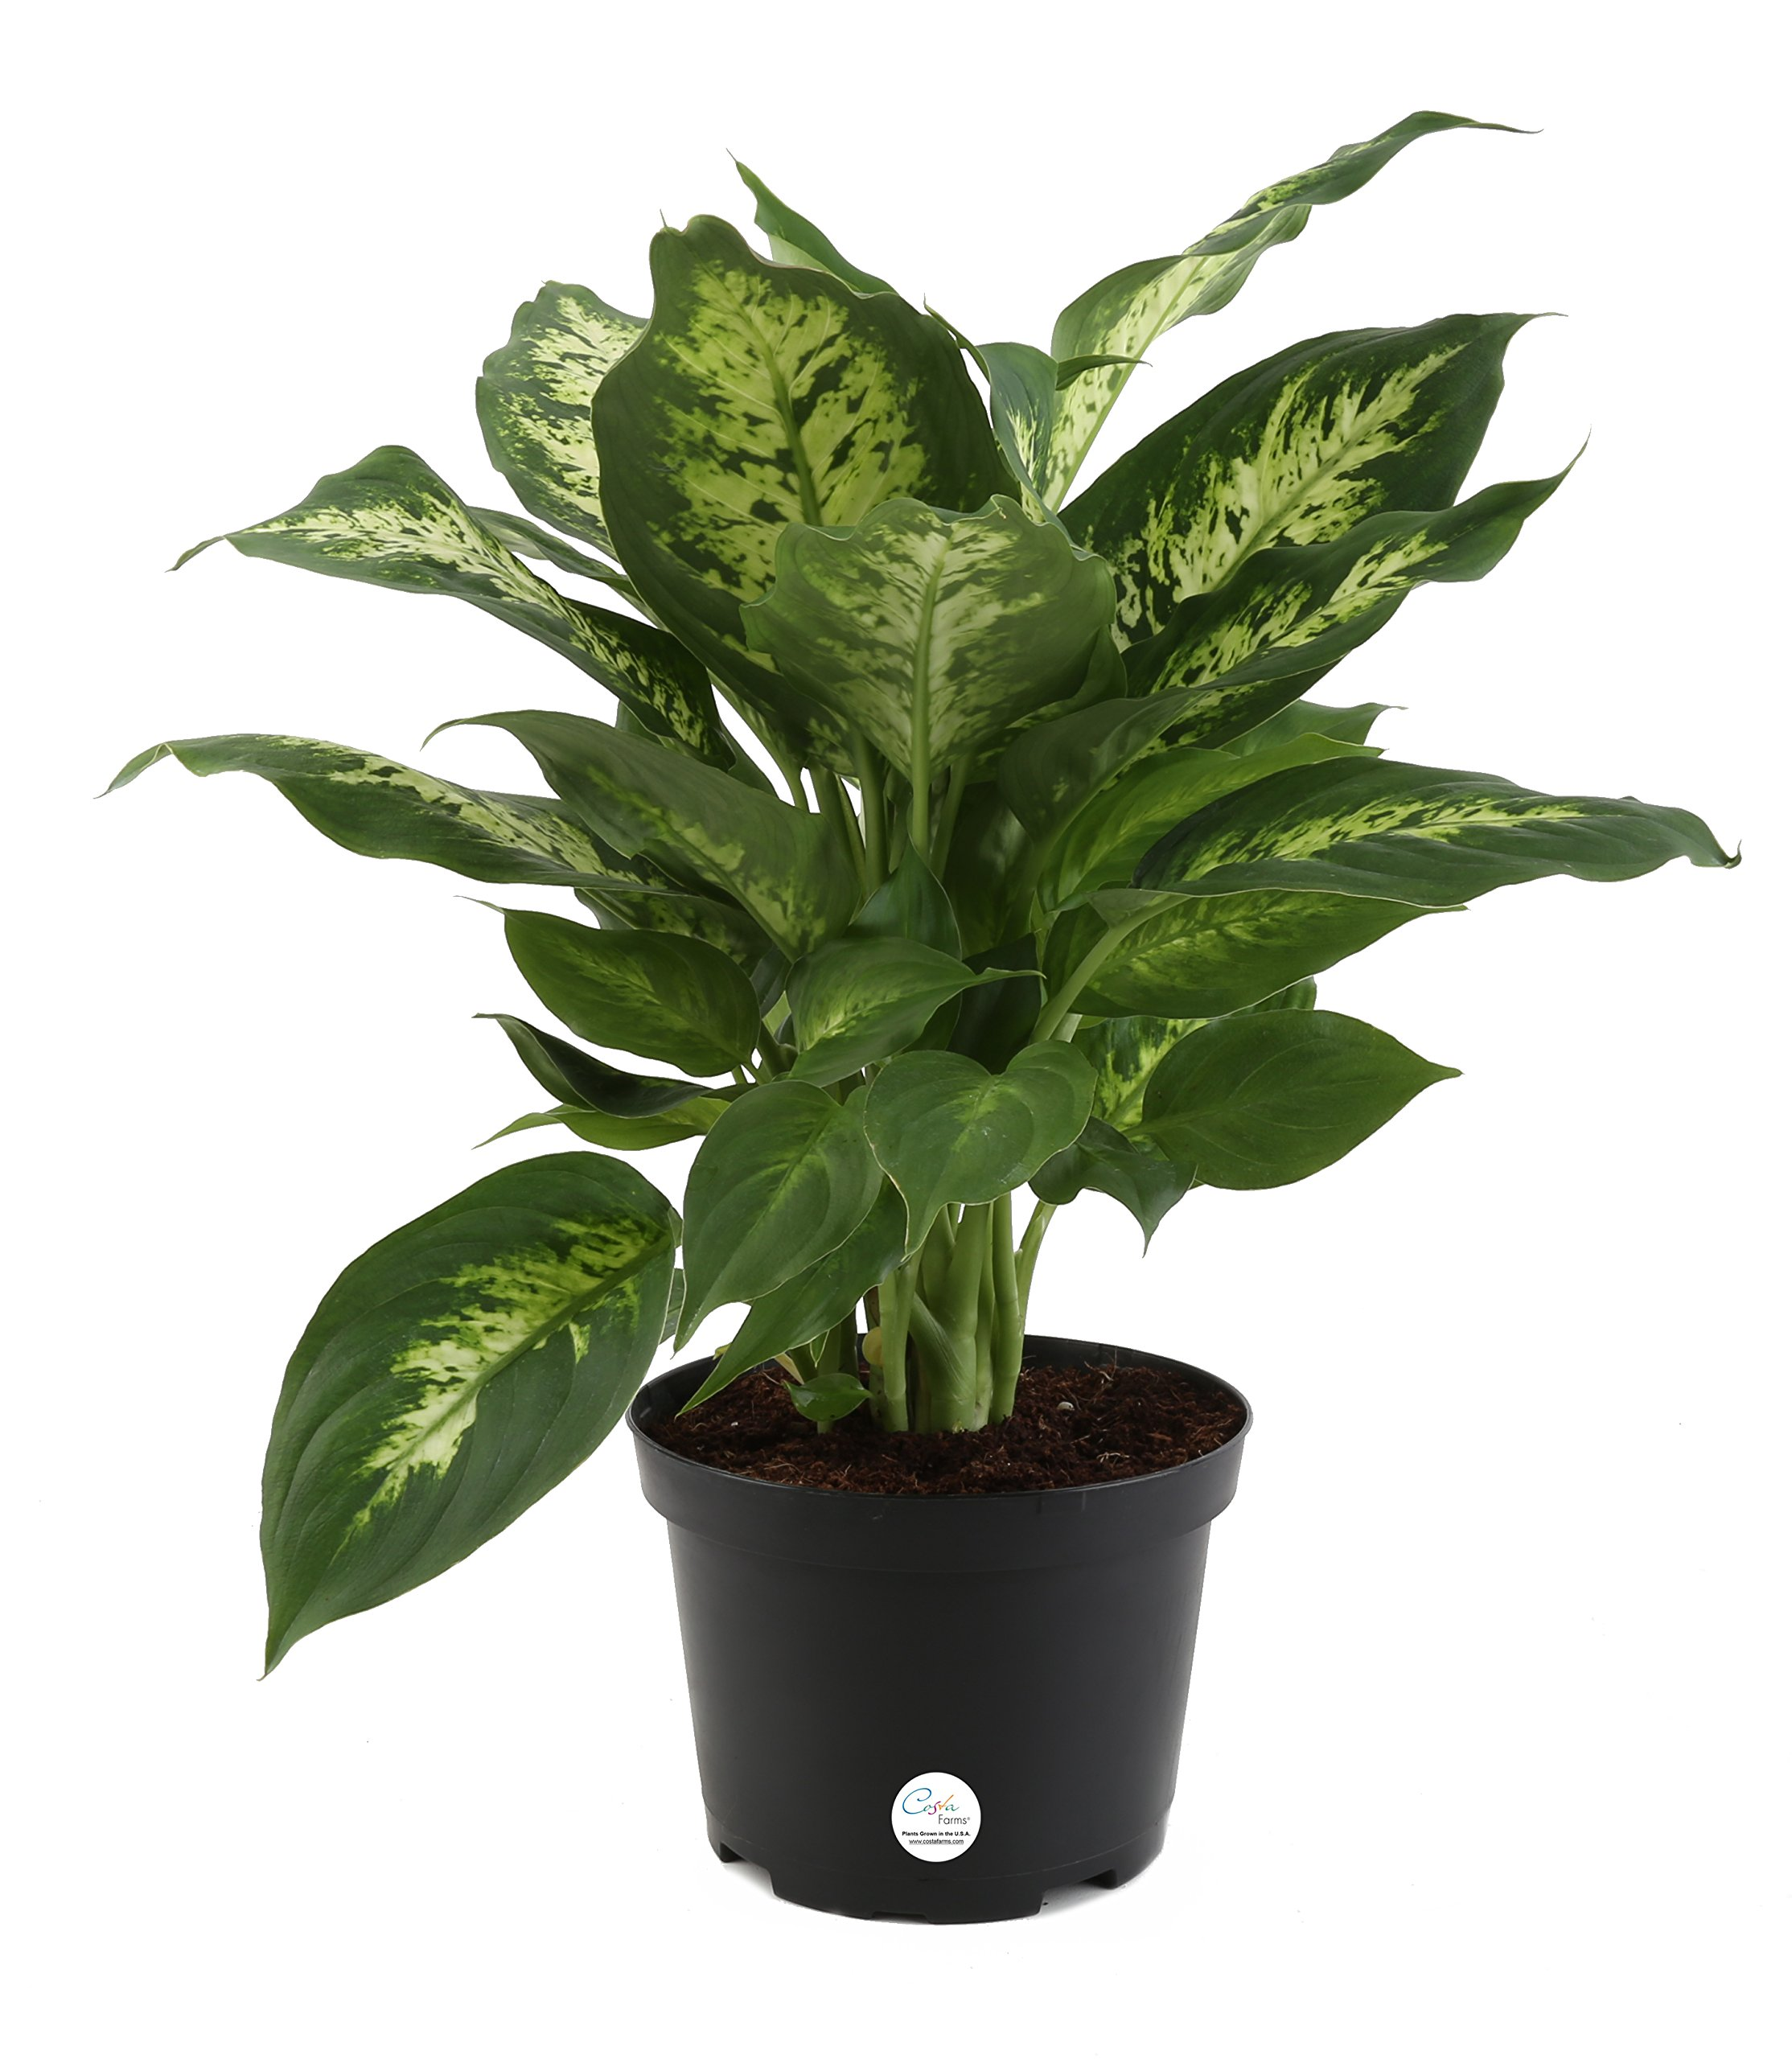 Costa Farms, Premium Live Indoor Exotica Dumb Cane, Dieffenbachia, Tabletop Plant, Grower Pot, Shipped Fresh From Our Farm, Excellent Gift by Costa Farms